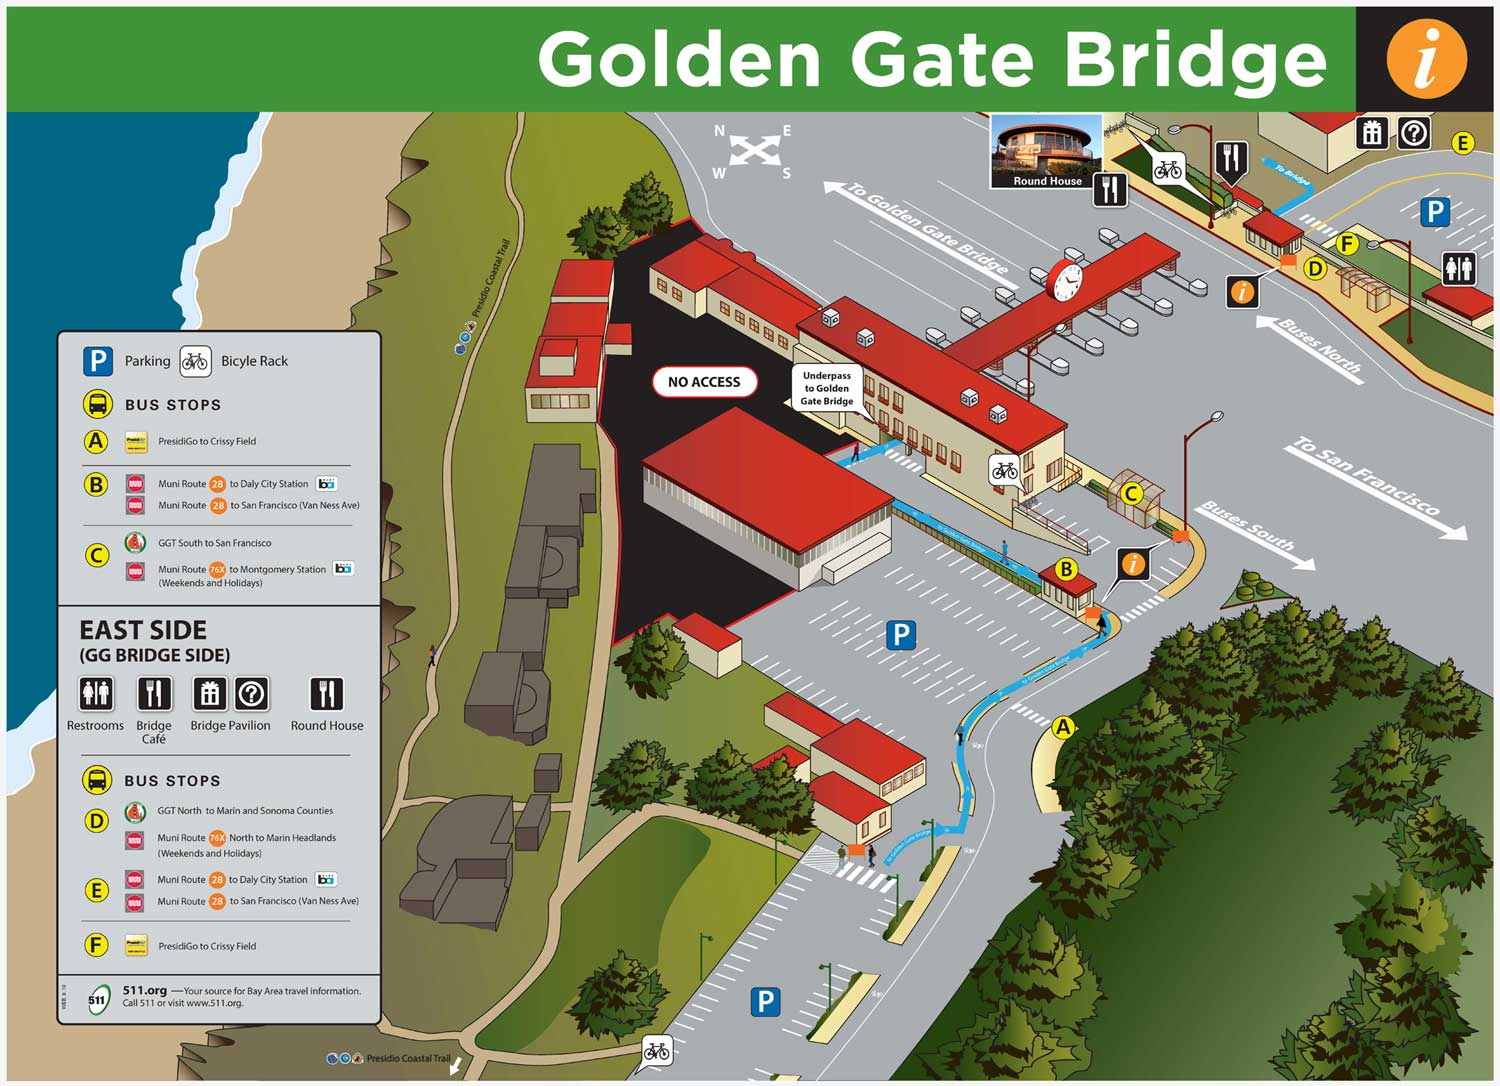 Golden Gate Bridge Parking & Bus Stop Map